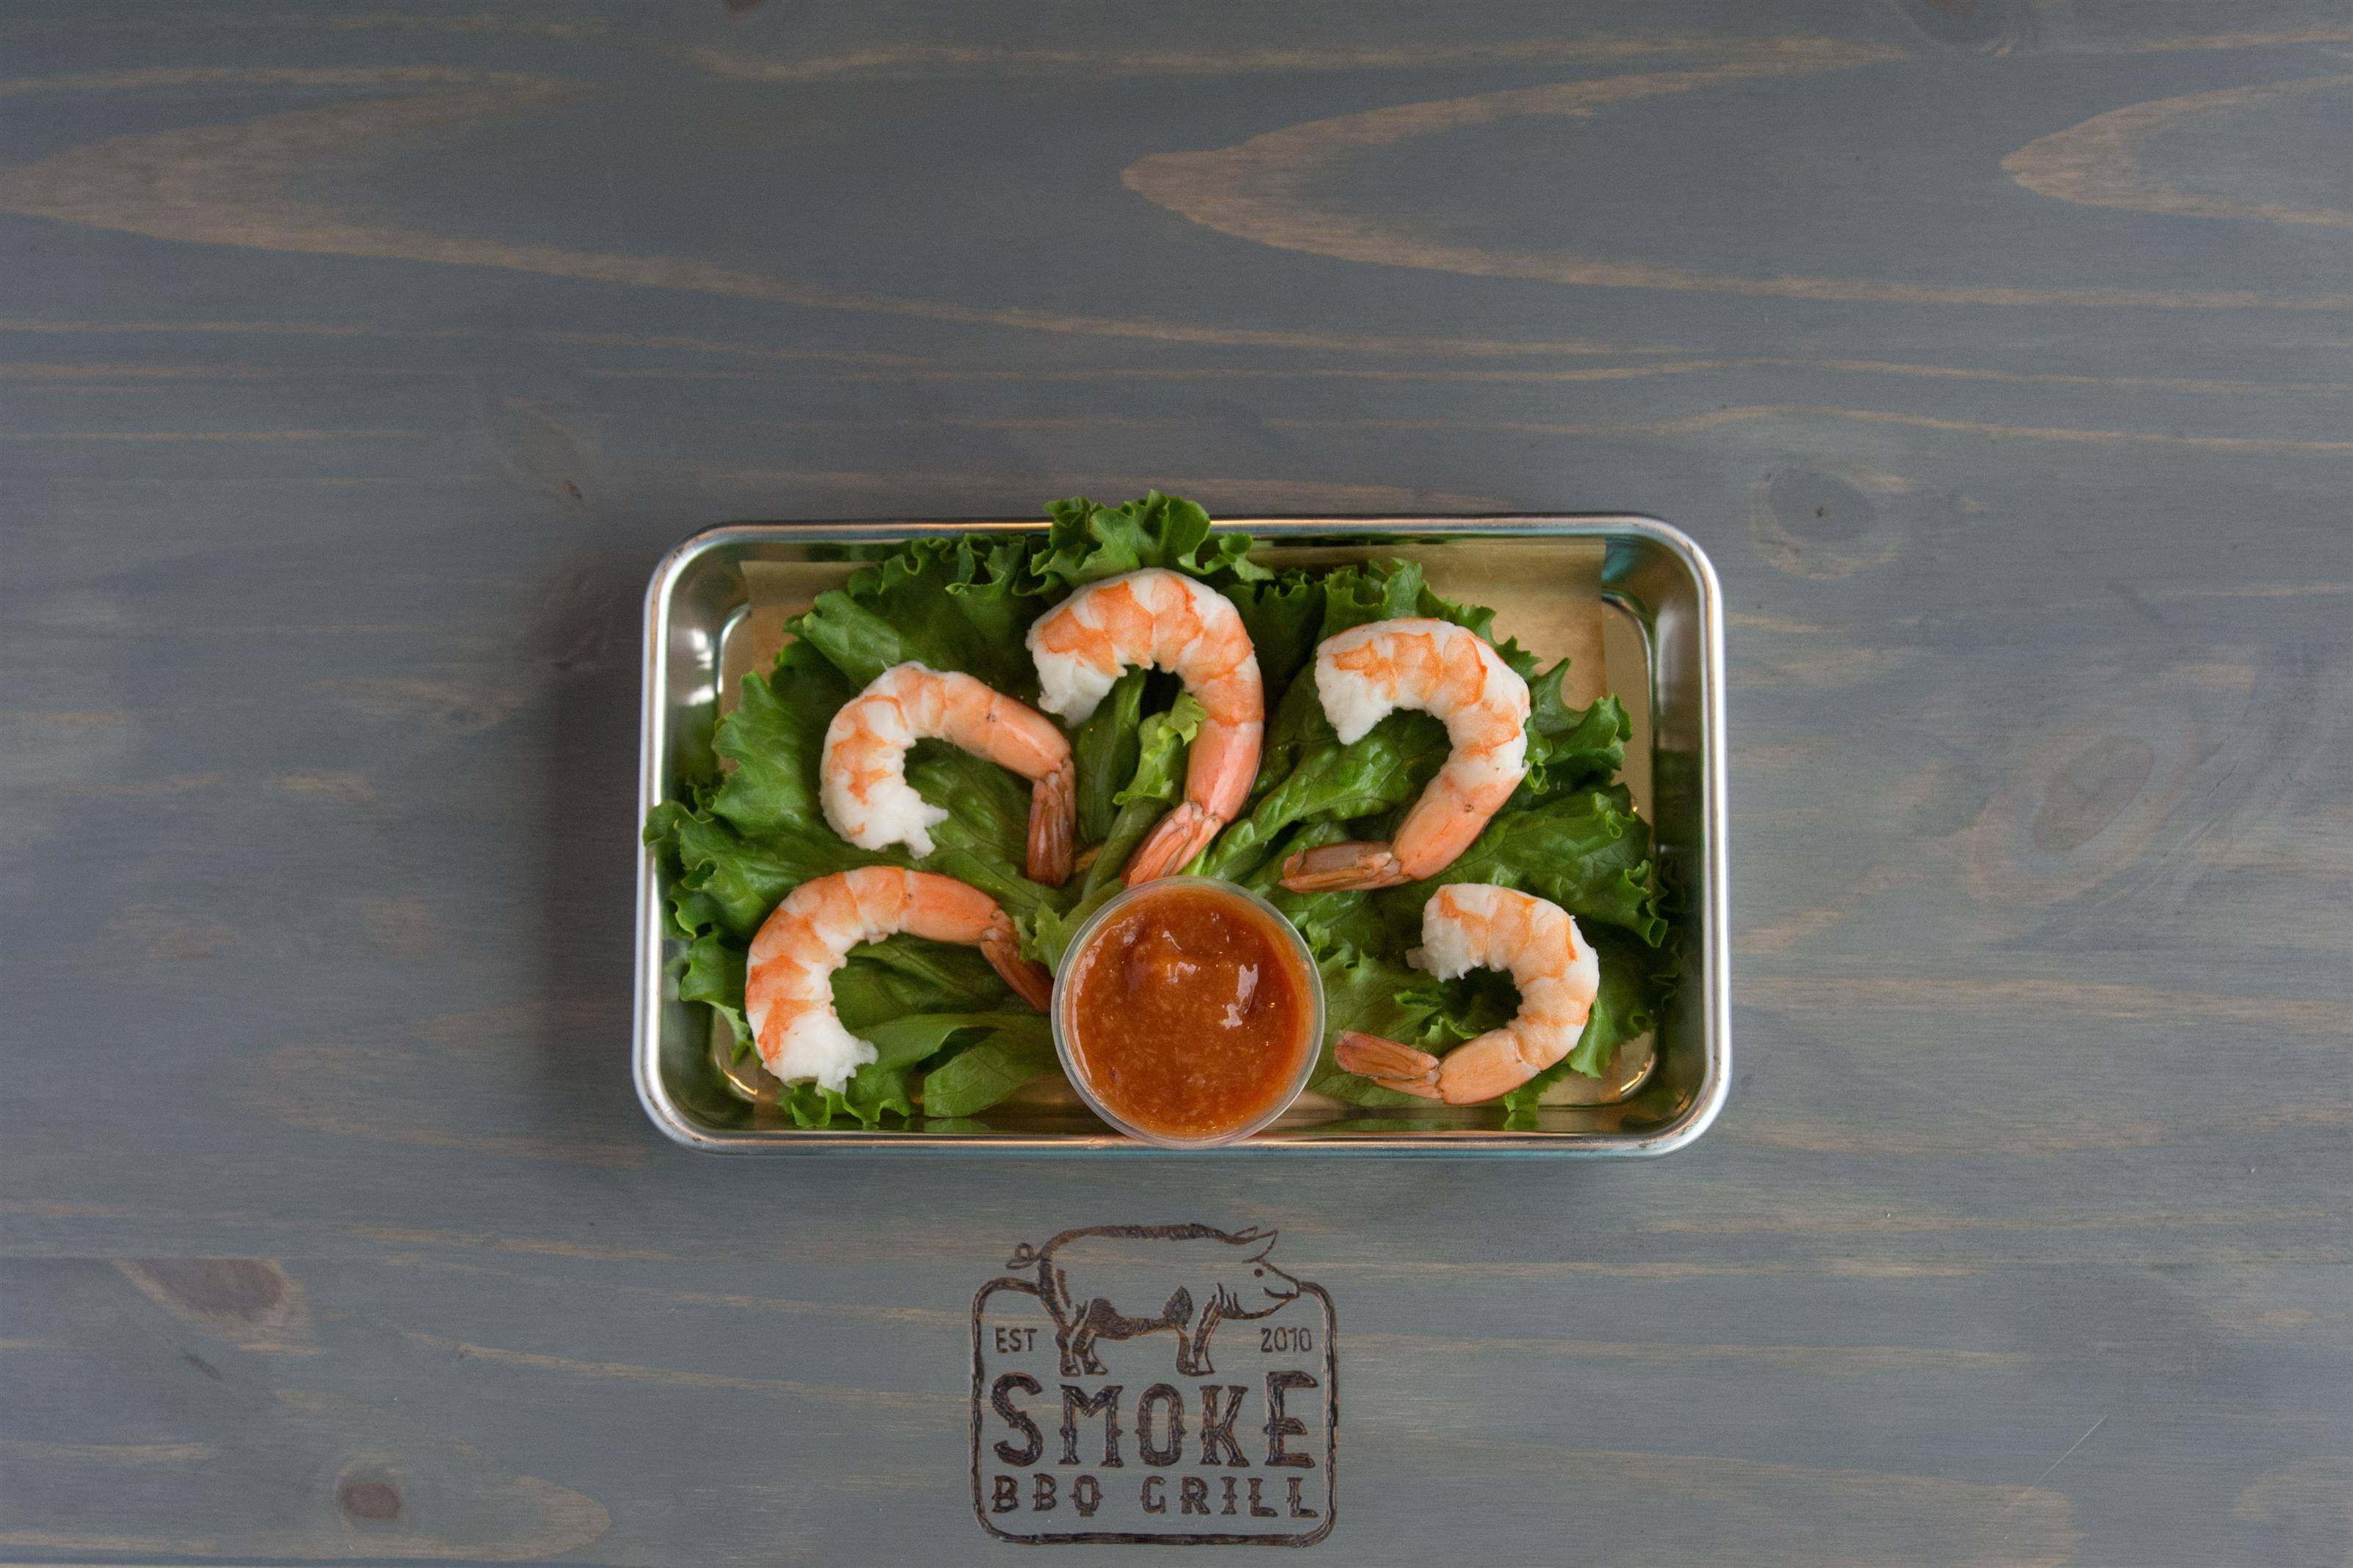 four shrimp on a bed on lettuce on a platter with a side of cocktail sauce